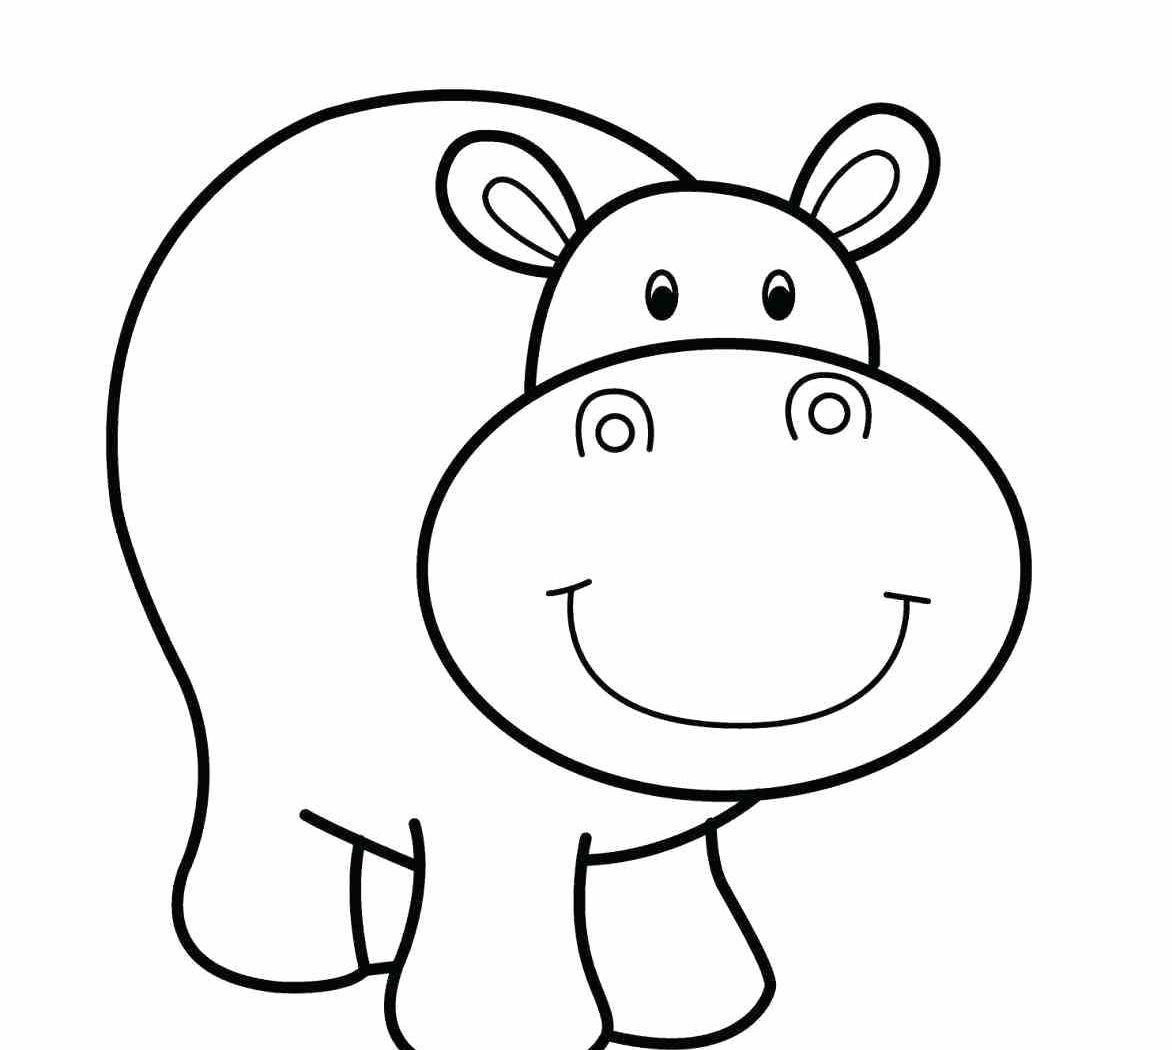 hippo outline drawing cartoon hippo drawing at getdrawings free download drawing hippo outline